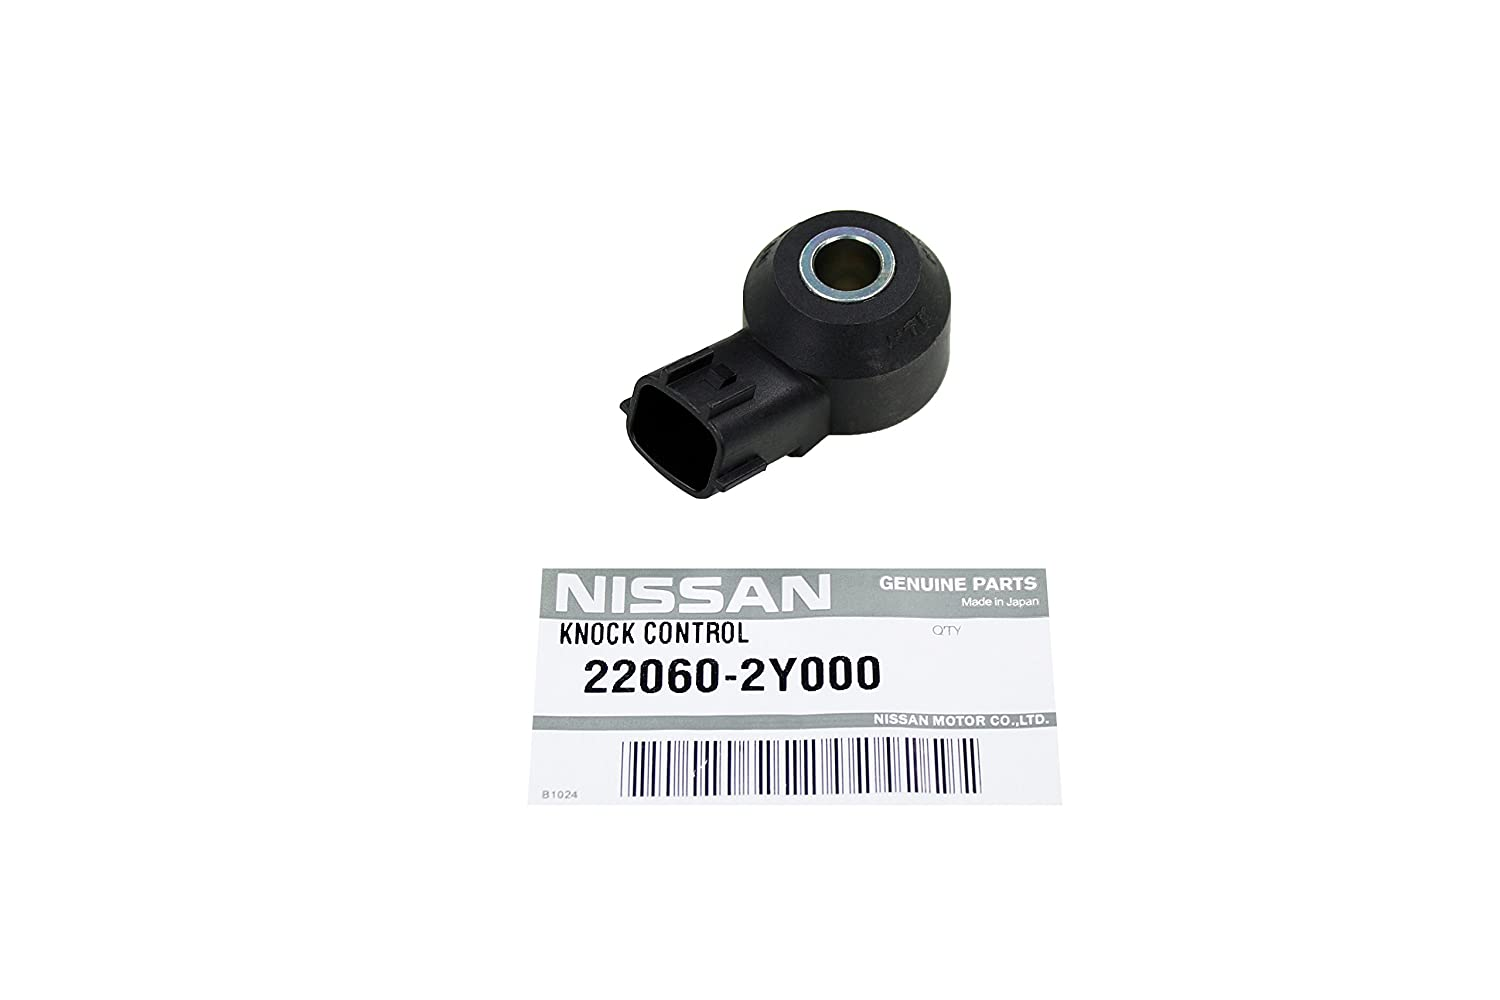 Genuine Knock Sensor Fits Nissan Altima Maxima 2011 Engine Diagram Pathfinder Infiniti G35 I35 M45 Q45 Qx4 Part Number 22060 2y000 Automotive